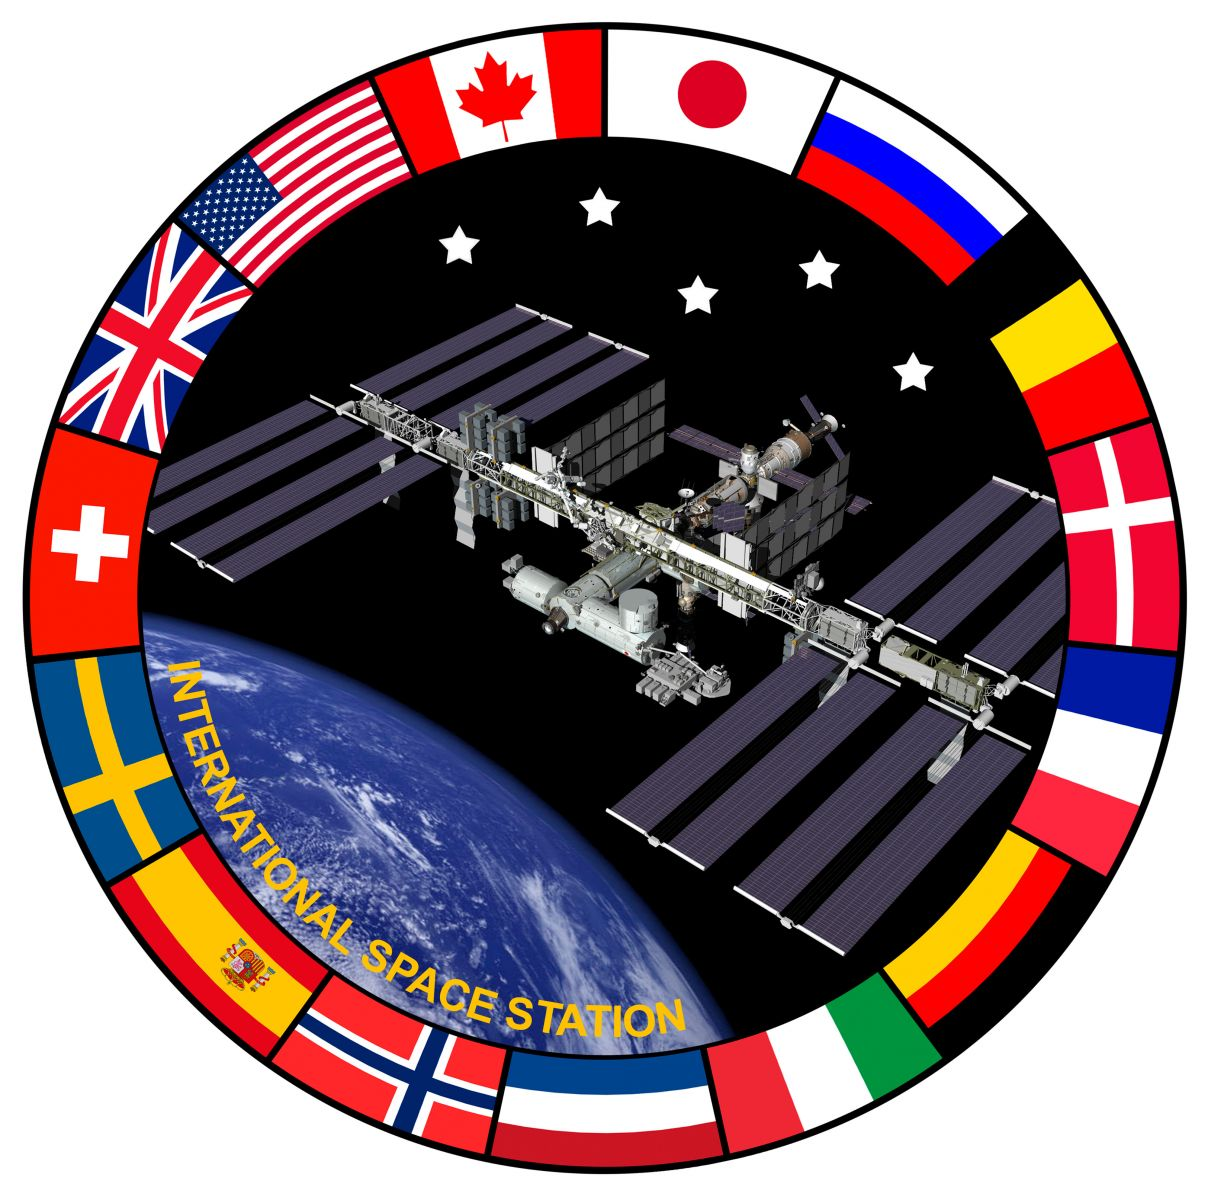 International Space Station (ISS) insignia - collectSPACE ...